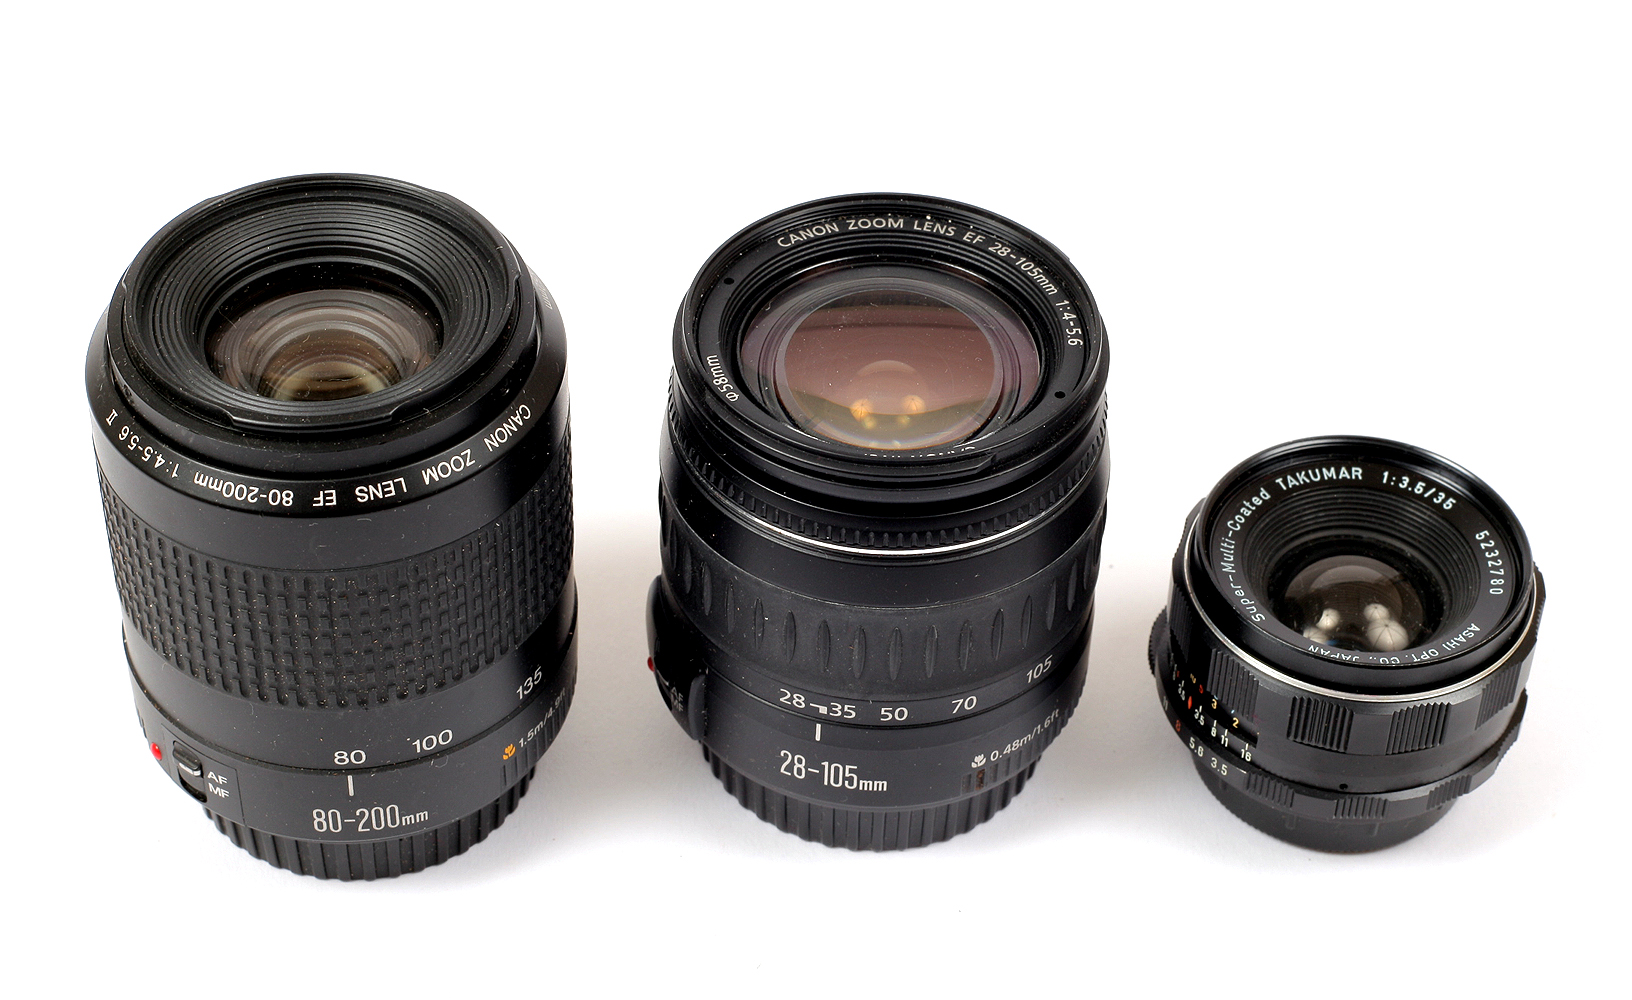 Lot 3 - Two Boxes of Miscellaneous Lenses. Including Canon 80-200mm, Canon 28-105mm and Takumar 35mm f3.